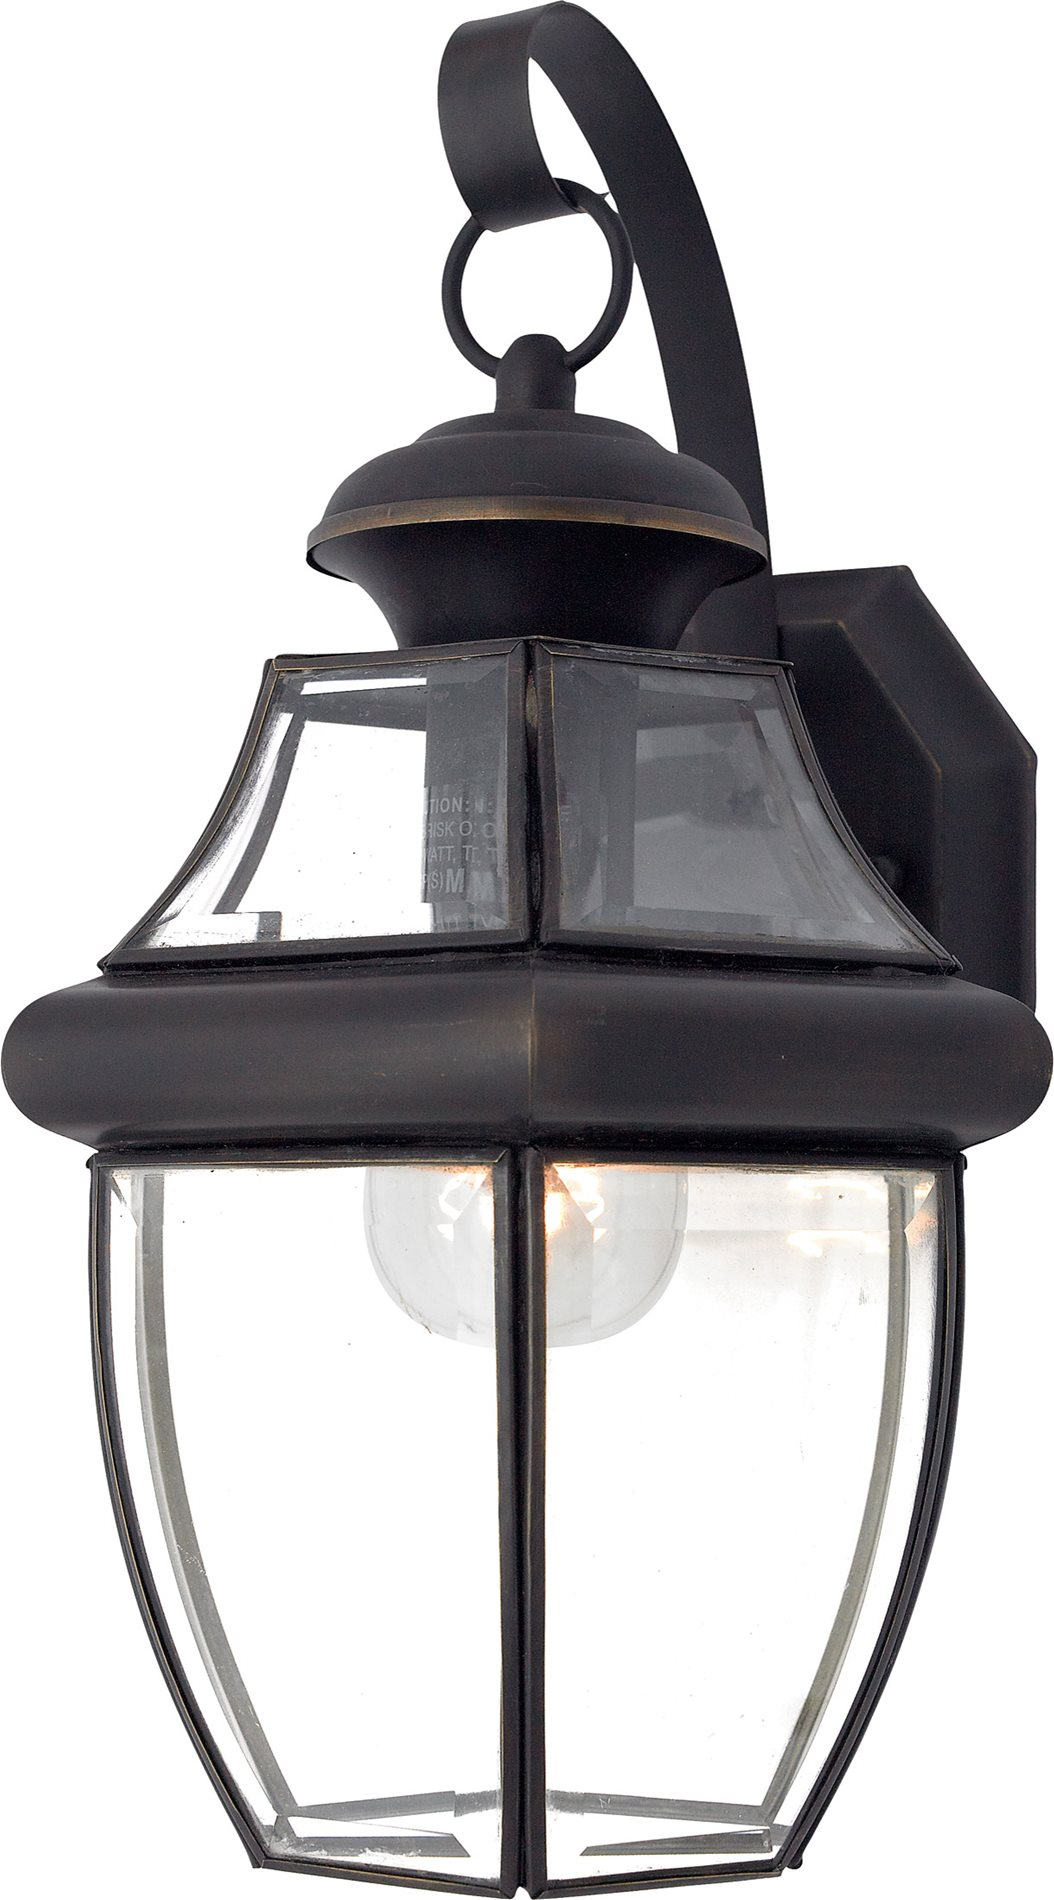 Quoizel ny8316z newbury traditional outdoor wall sconce qz for Landscape lighting products